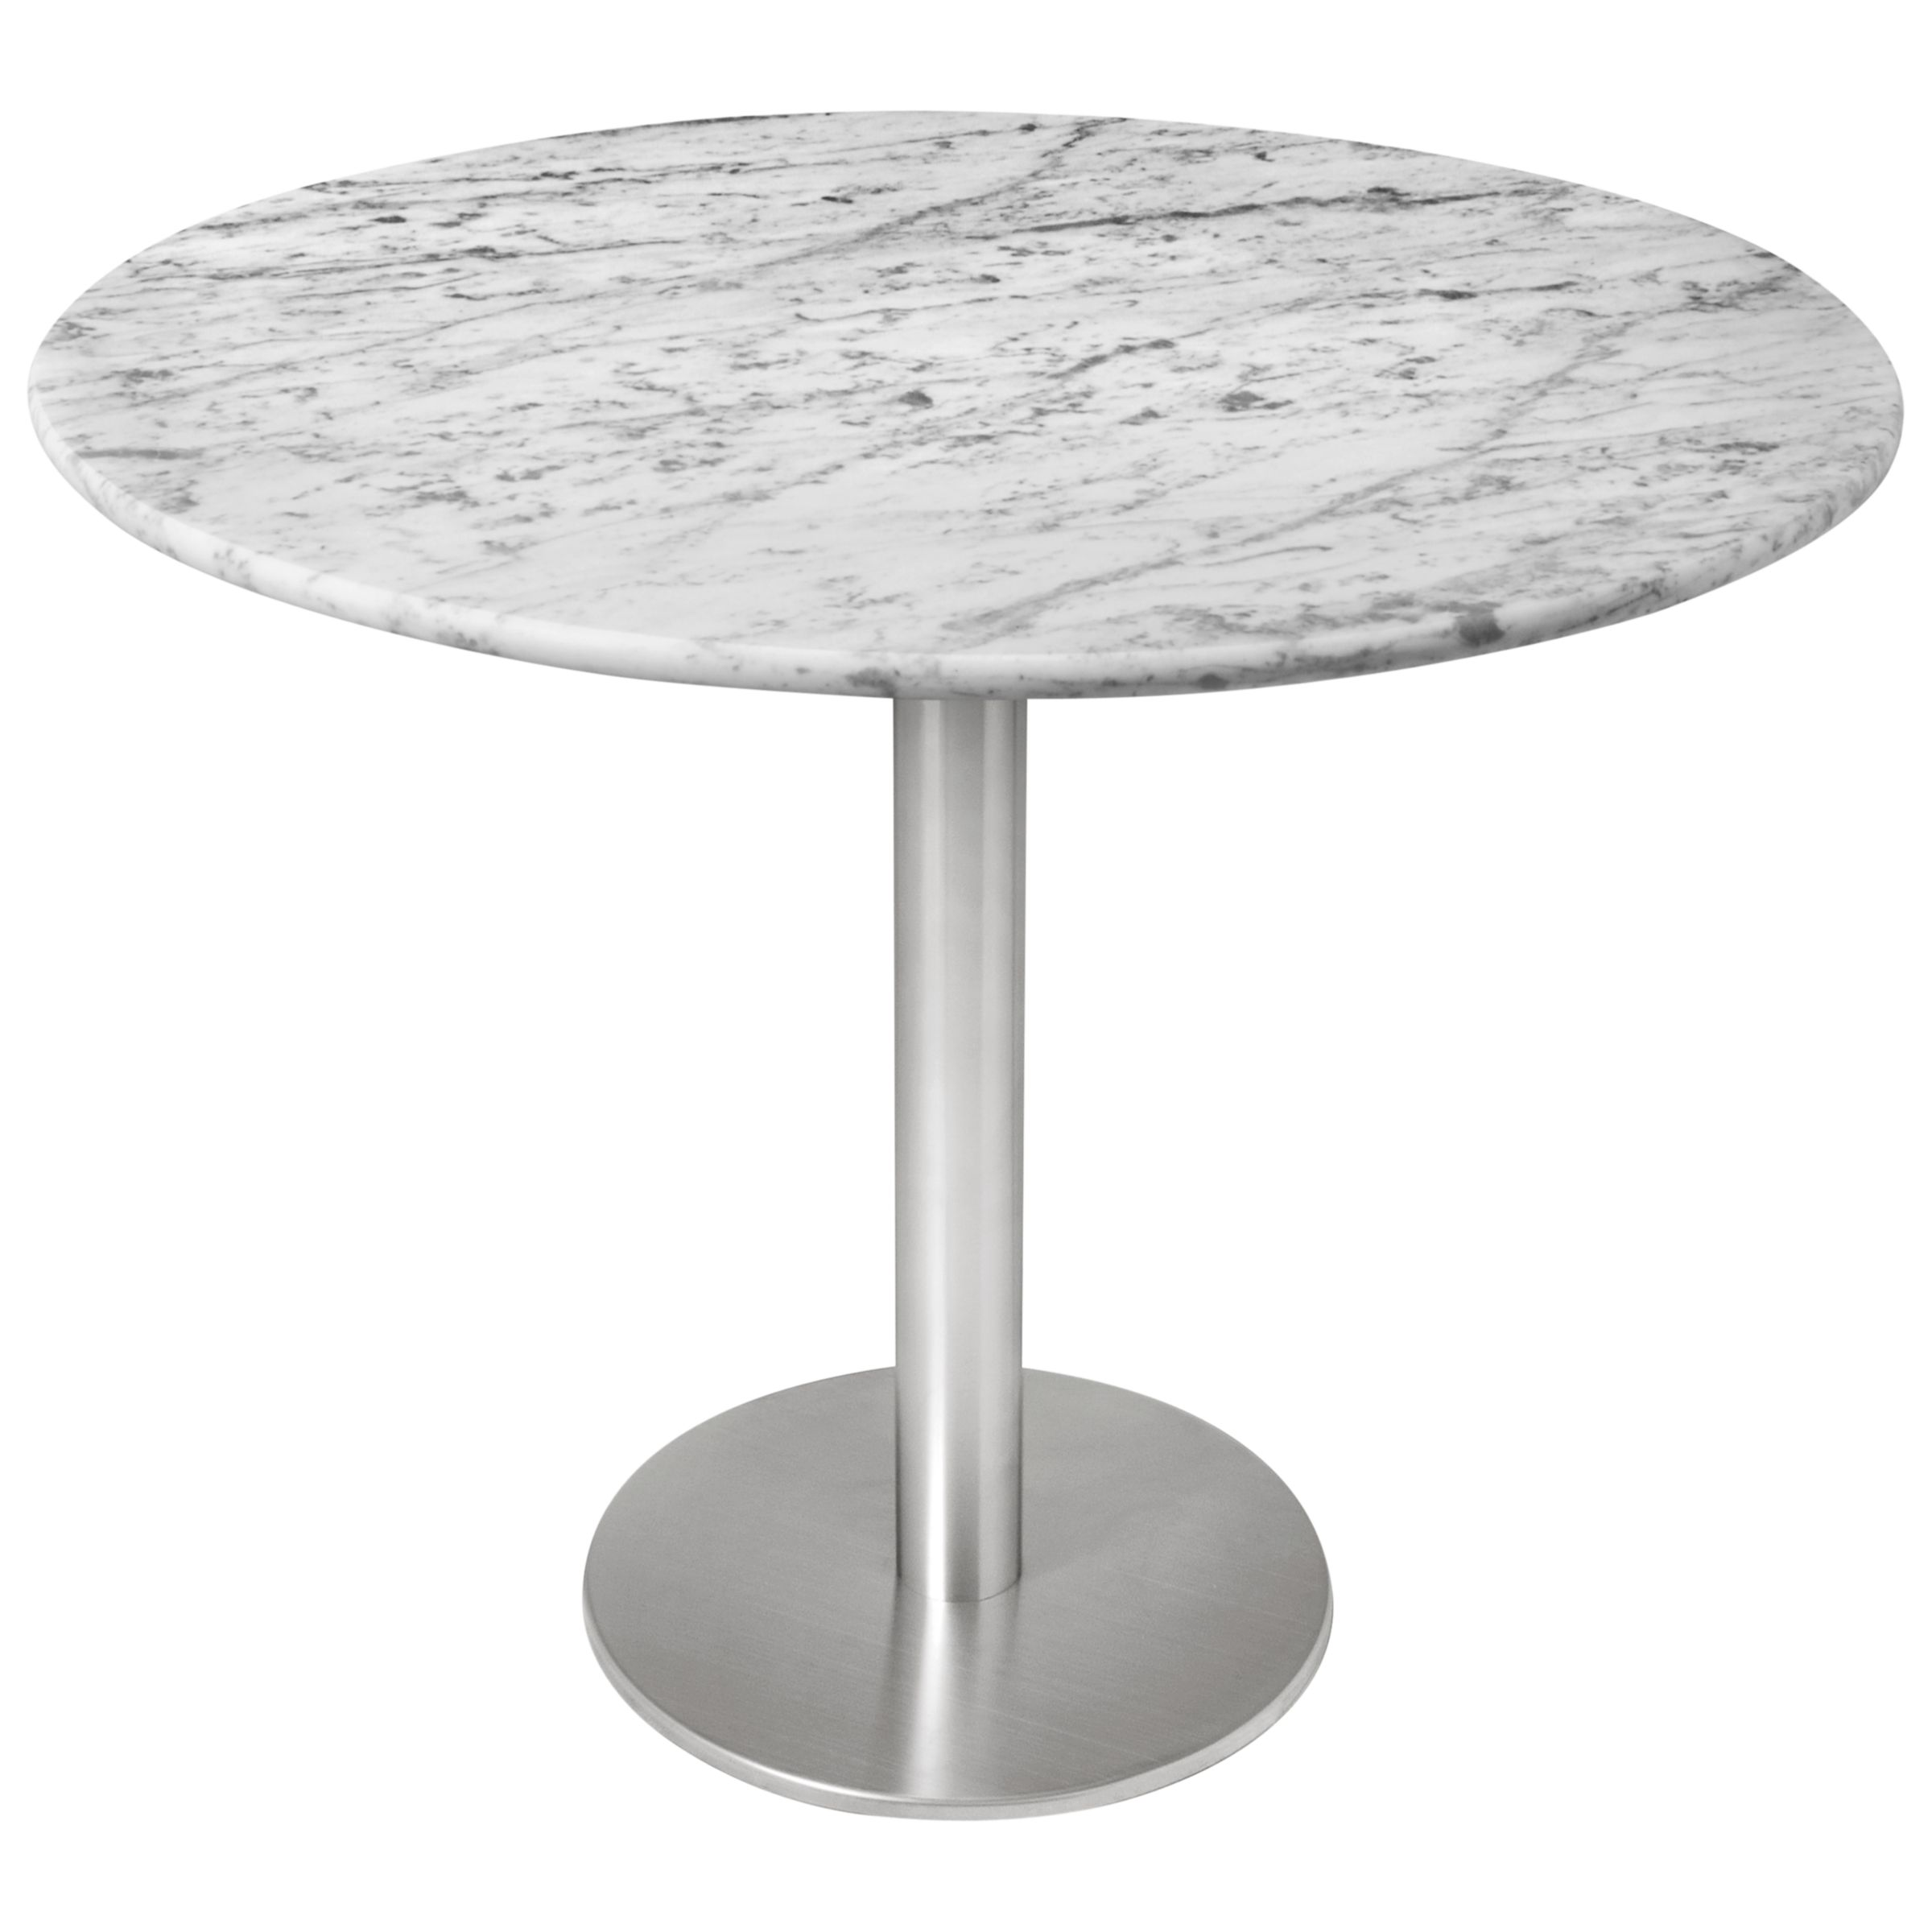 John Lewis Ingrid Marble Dining Tables Carrara Review